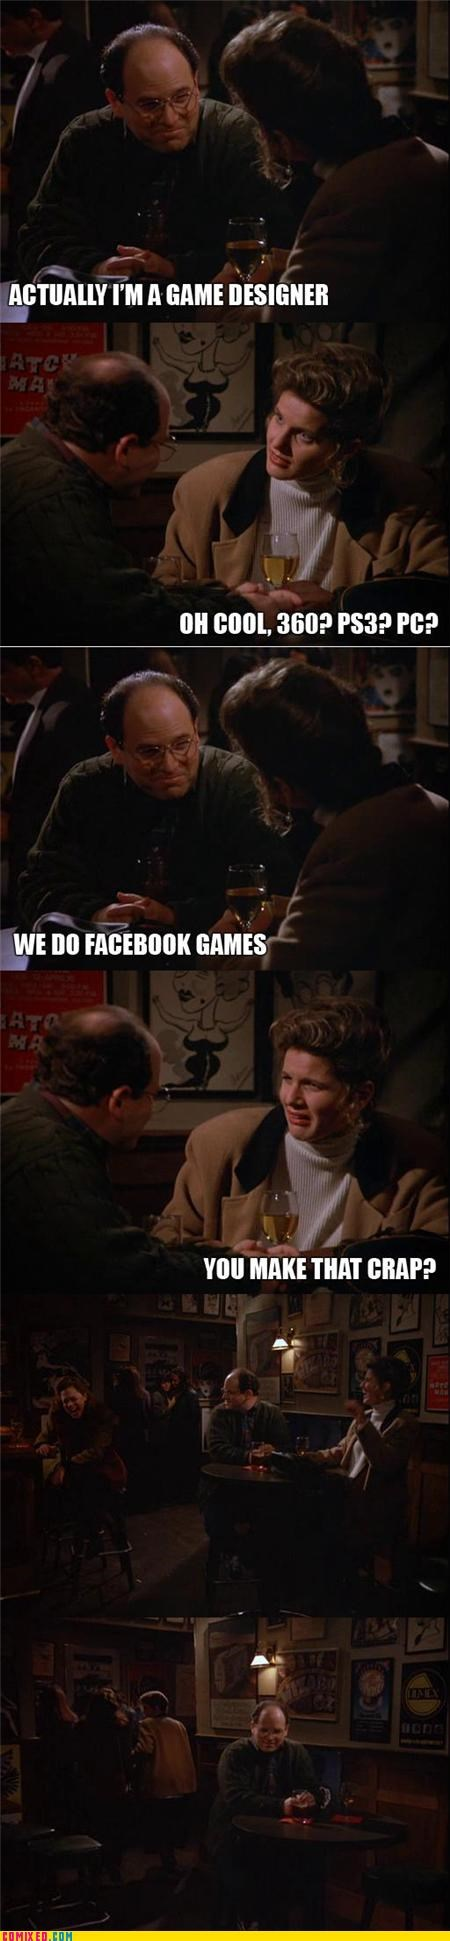 art vandelay best of week consoles facebook PC seinfeld TV video games - 5307661824